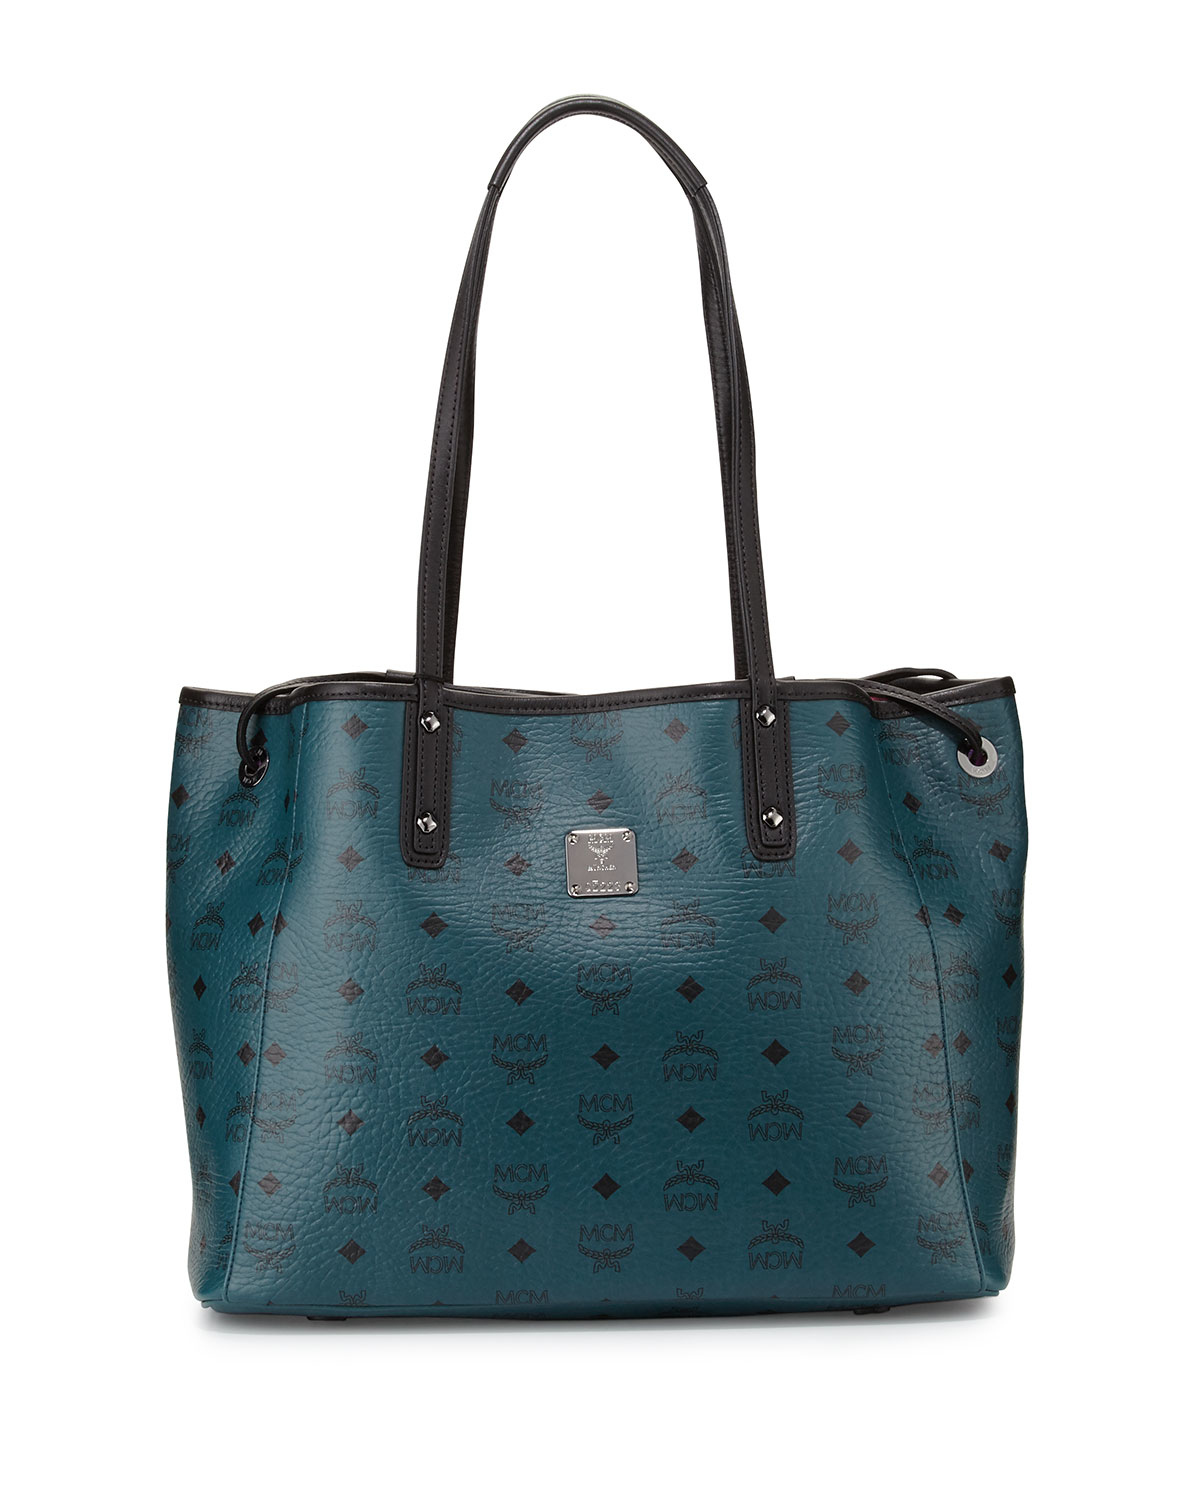 mcm galaxy reversible medium shopper tote bag in green lyst. Black Bedroom Furniture Sets. Home Design Ideas